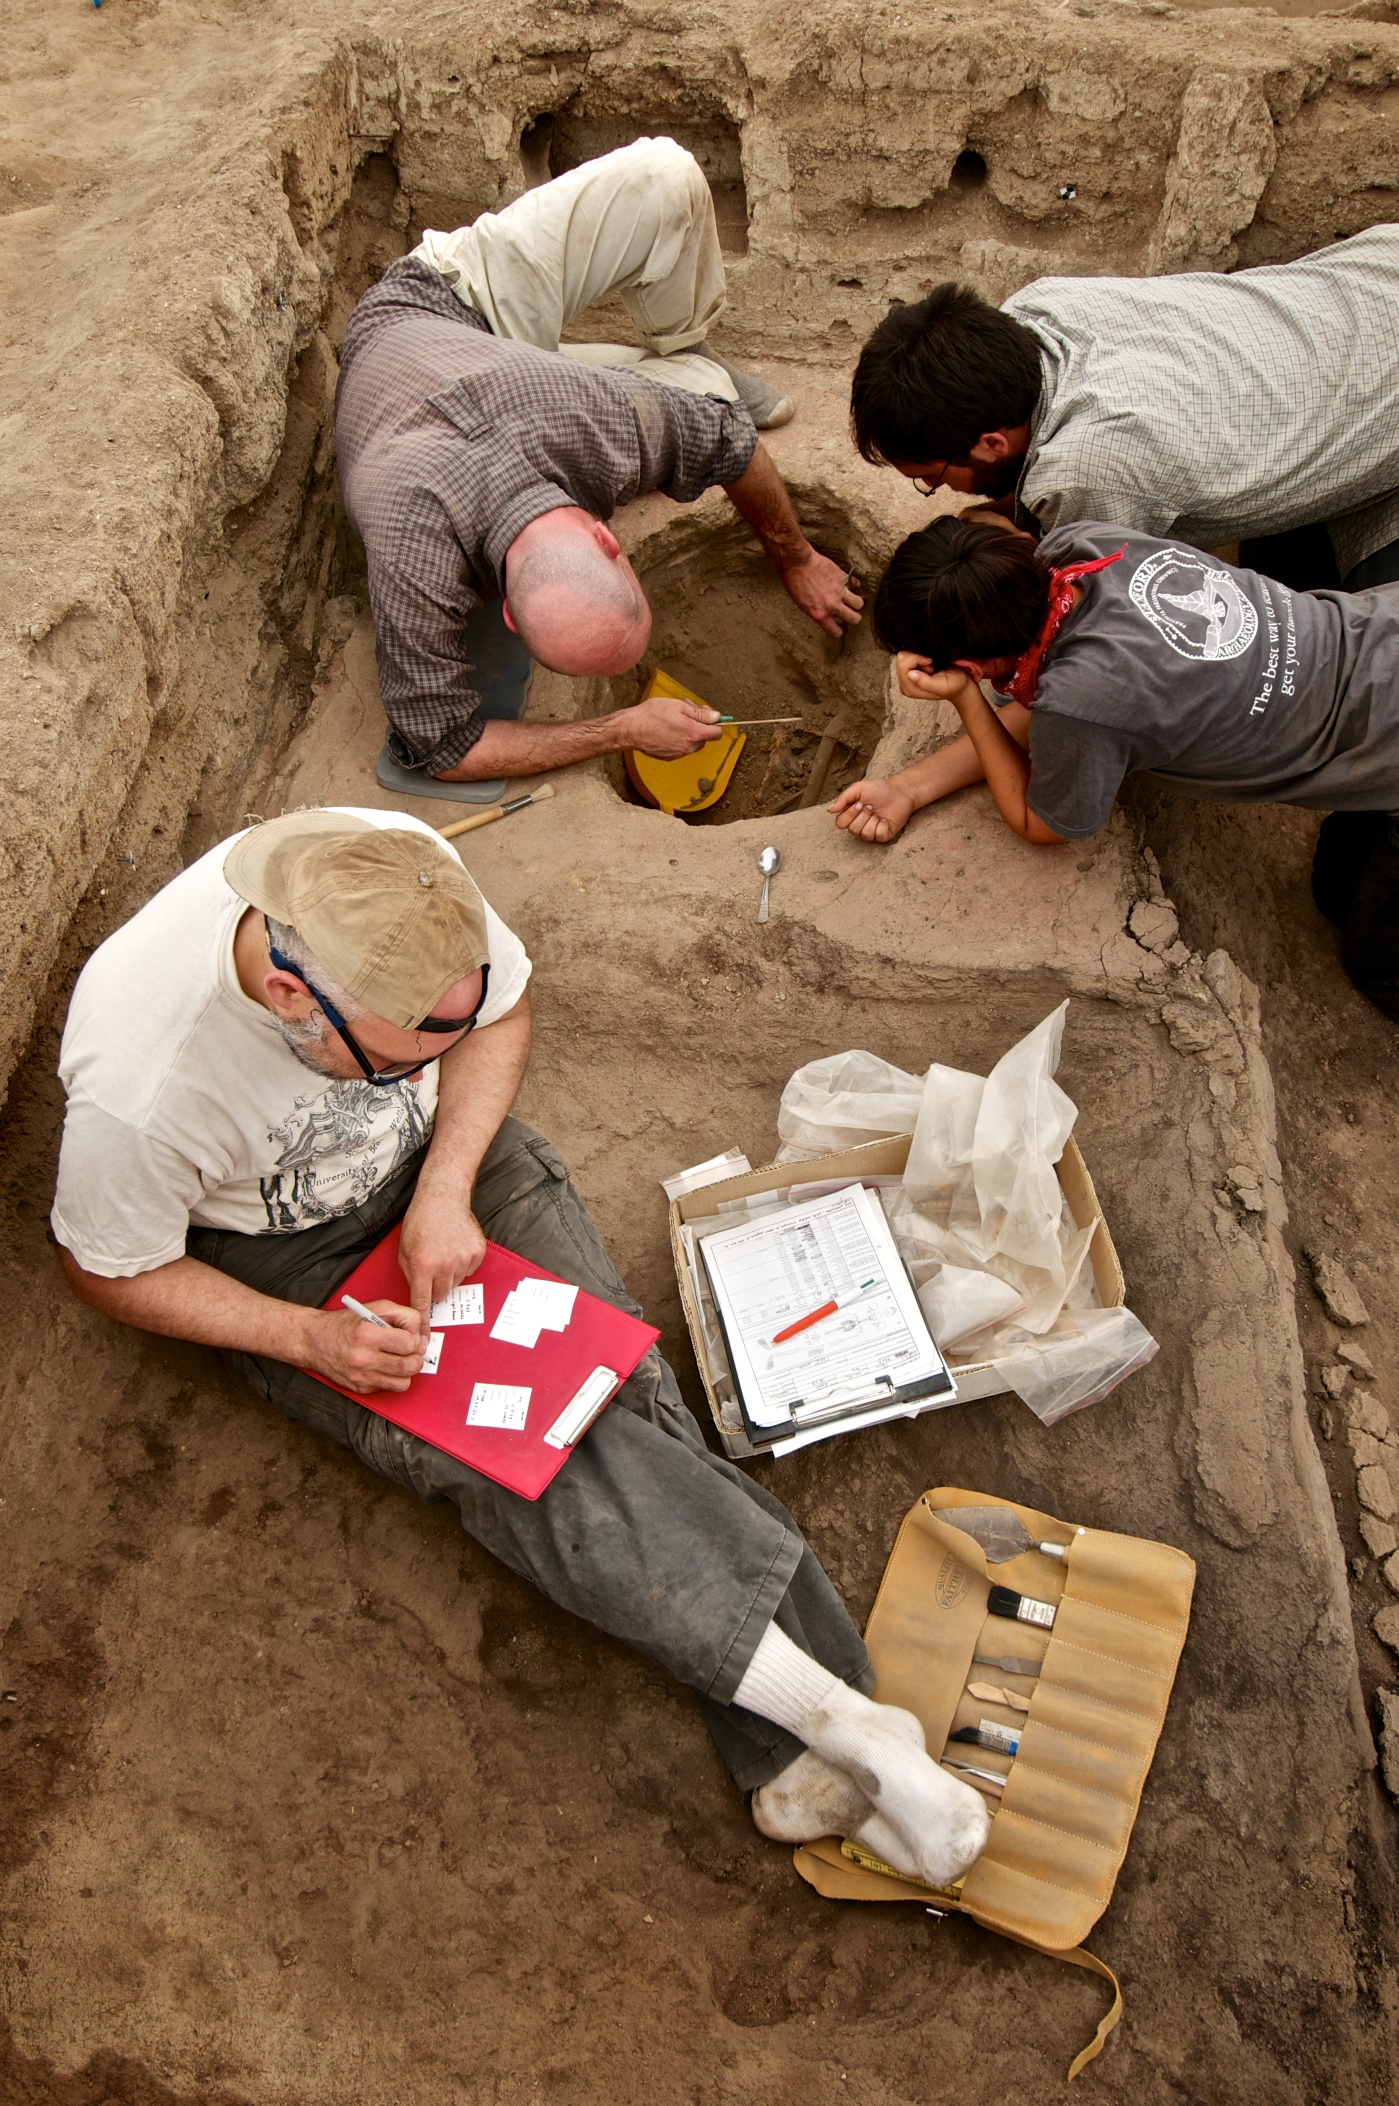 Burial Excavation in Building 52